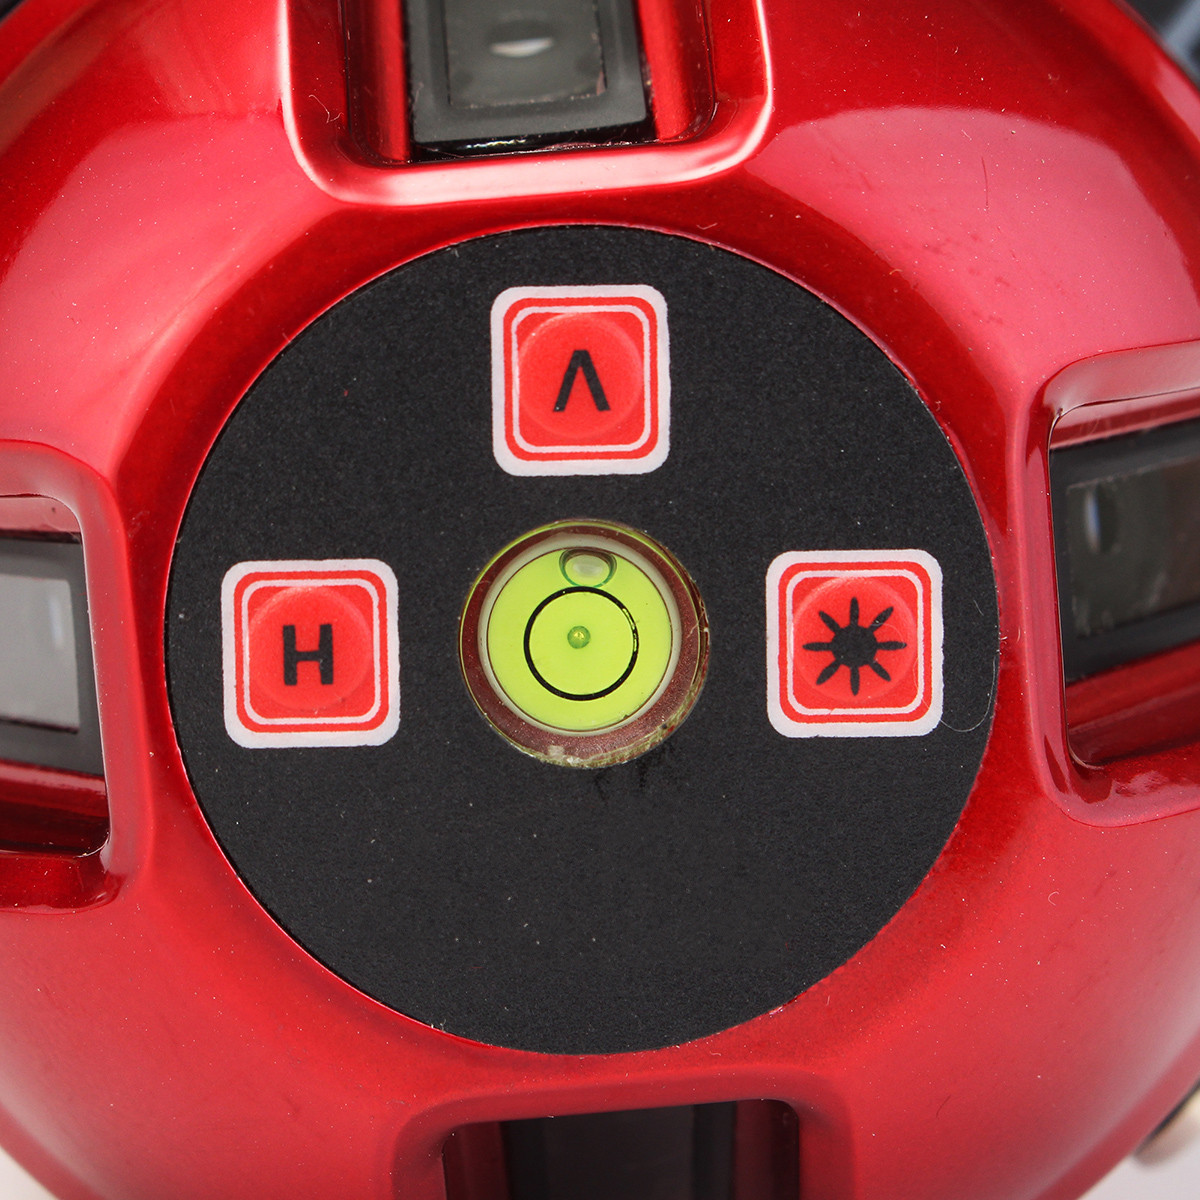 Waterproof 5 Lines 6 Points Laser Level Red Automatic Self Leveling Level Measure Tool Outdoor Mode